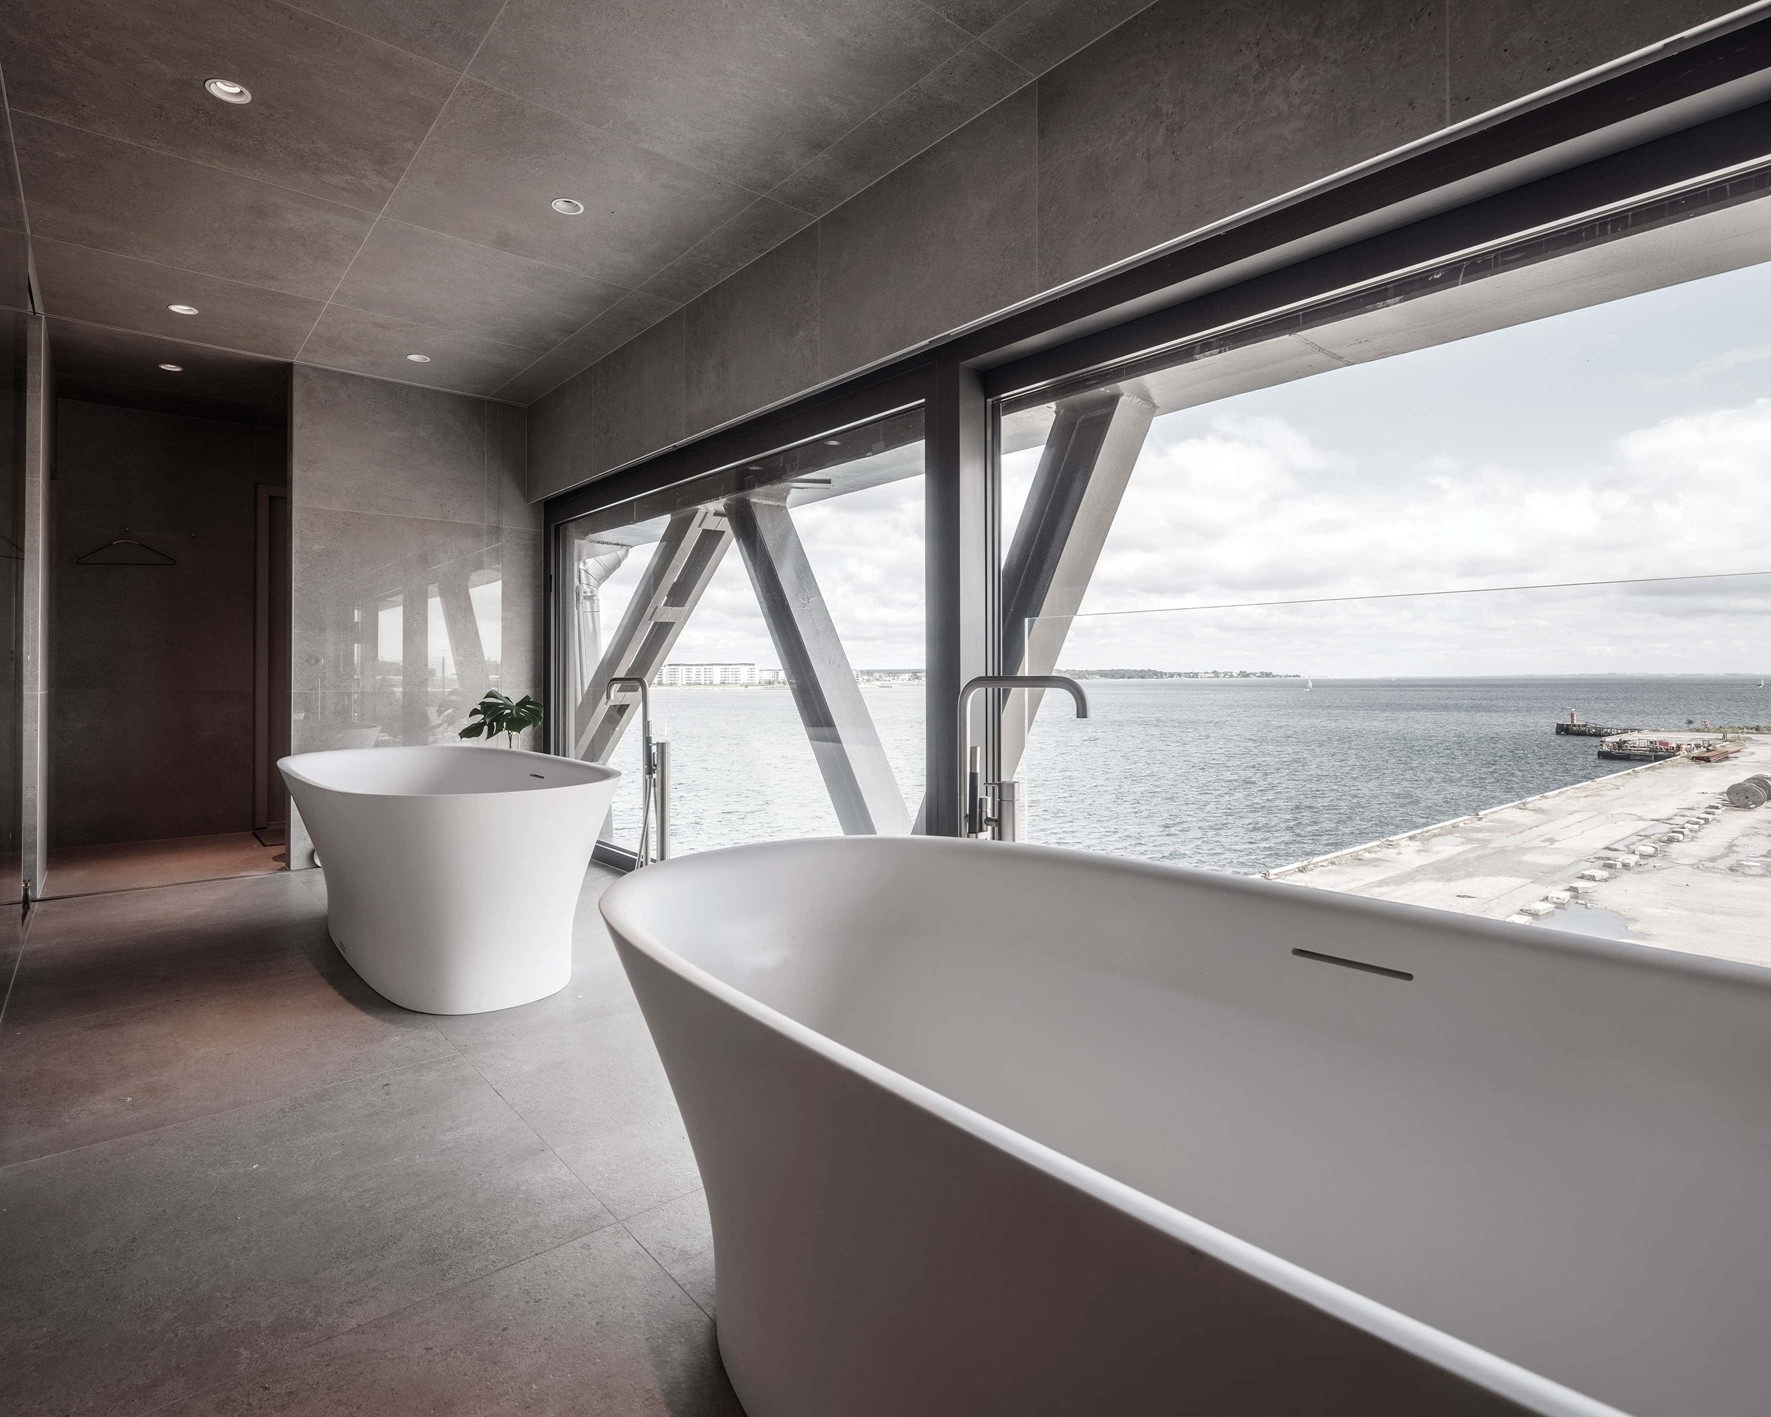 douglas_the-krane-copenhagen_spa-room_dinesen_02.jpg